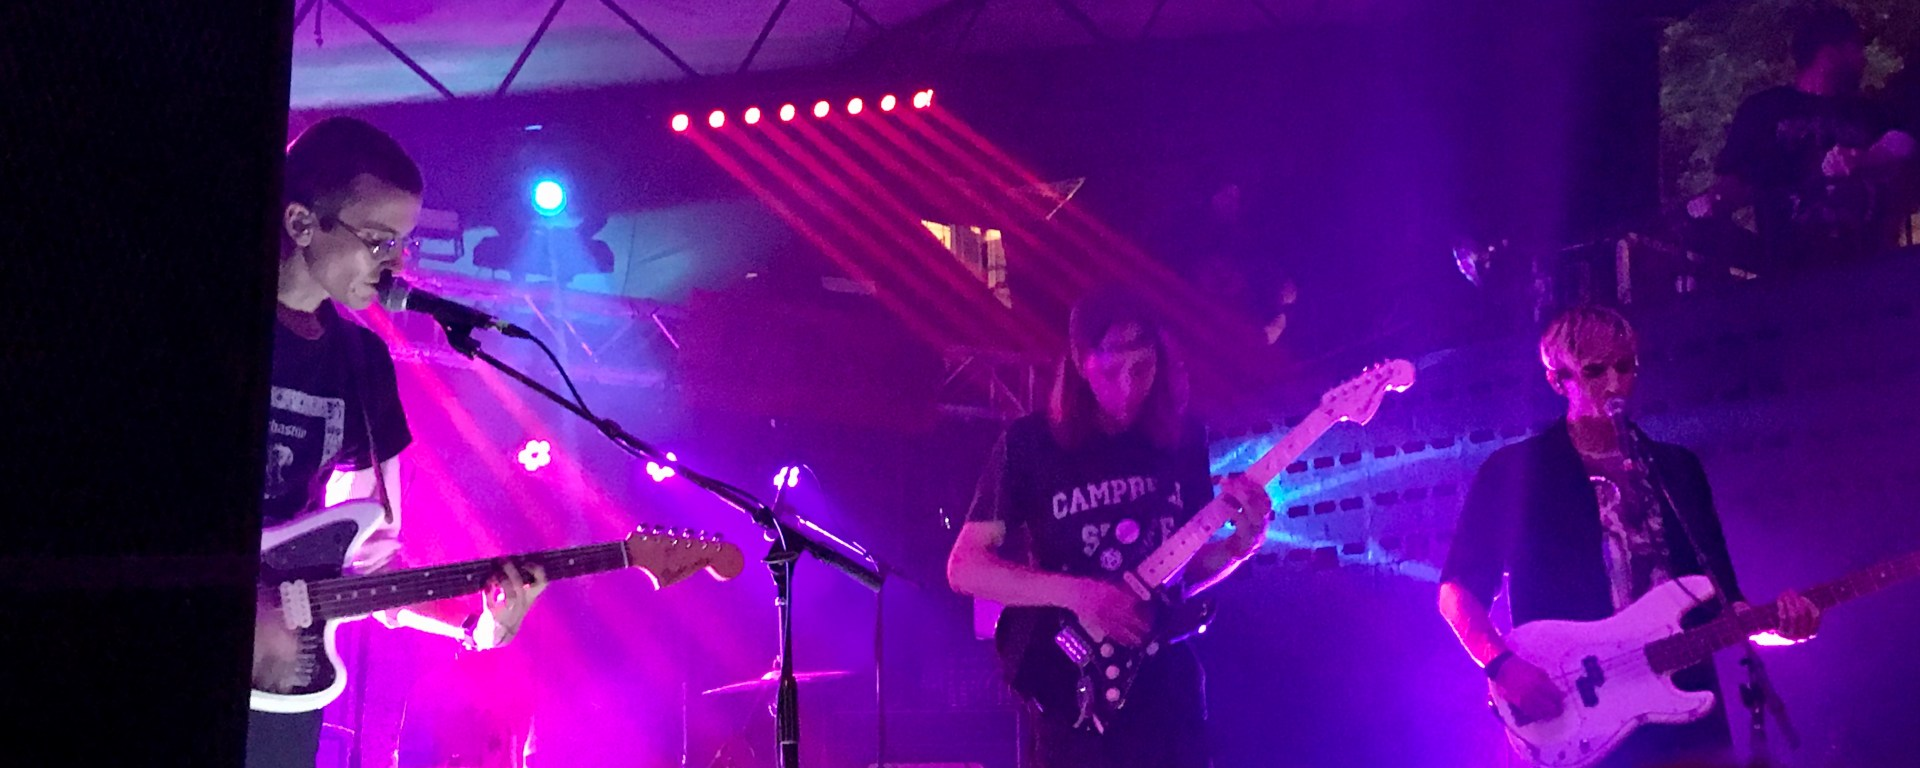 Members from the band DIIV performing live on stage amidst multiple lights.